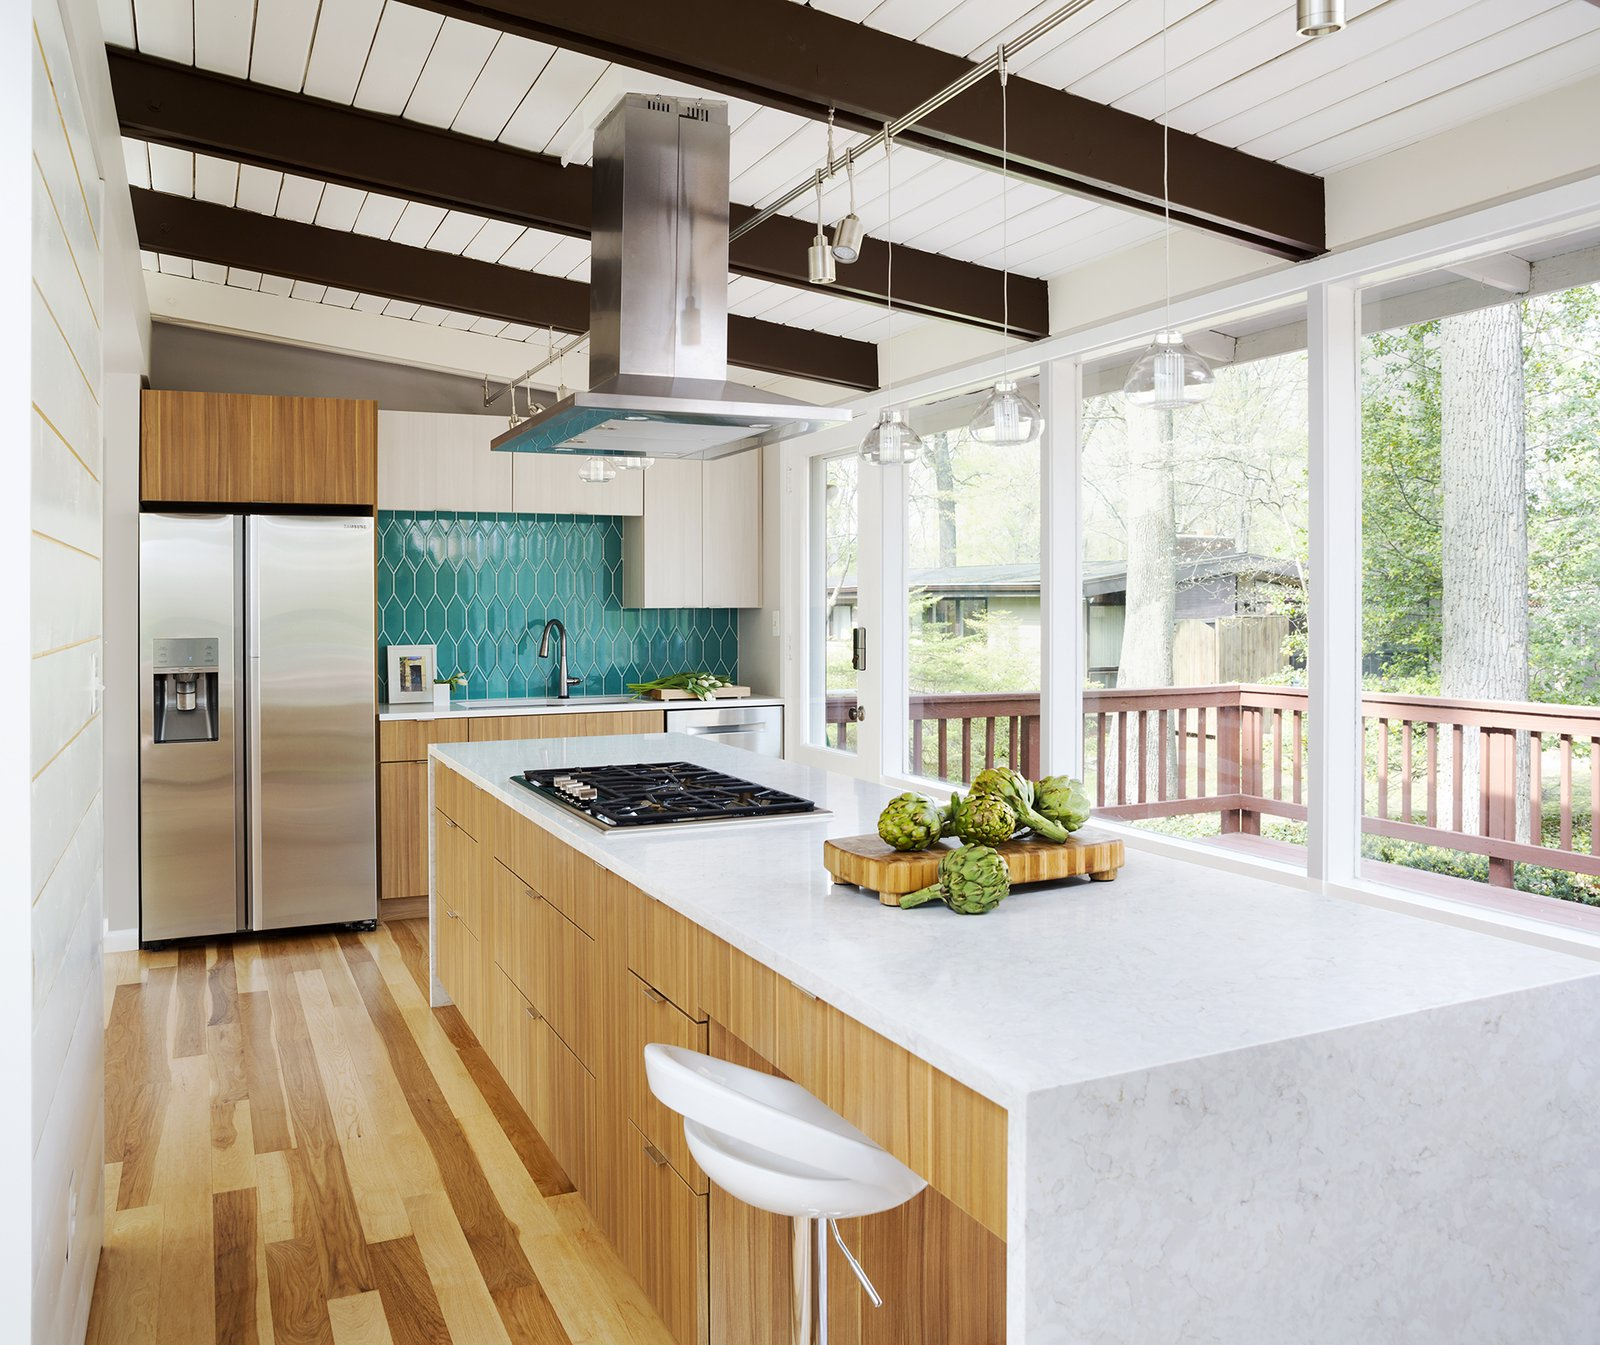 Kitchen, Porcelain Tile Backsplashe, Wood Cabinet, Engineered Quartz Counter, Light Hardwood Floor, Refrigerator, Track Lighting, Cooktops, Dishwasher, Range Hood, Undermount Sink, and Pendant Lighting Ceaserstone in Blizzard was used for the perimeter countertop, and Silestone in Lusso for the island top and the waterfall edges.  Photo 8 of 13 in Before & After: Two Masterful Kitchen Renovations by Case Design